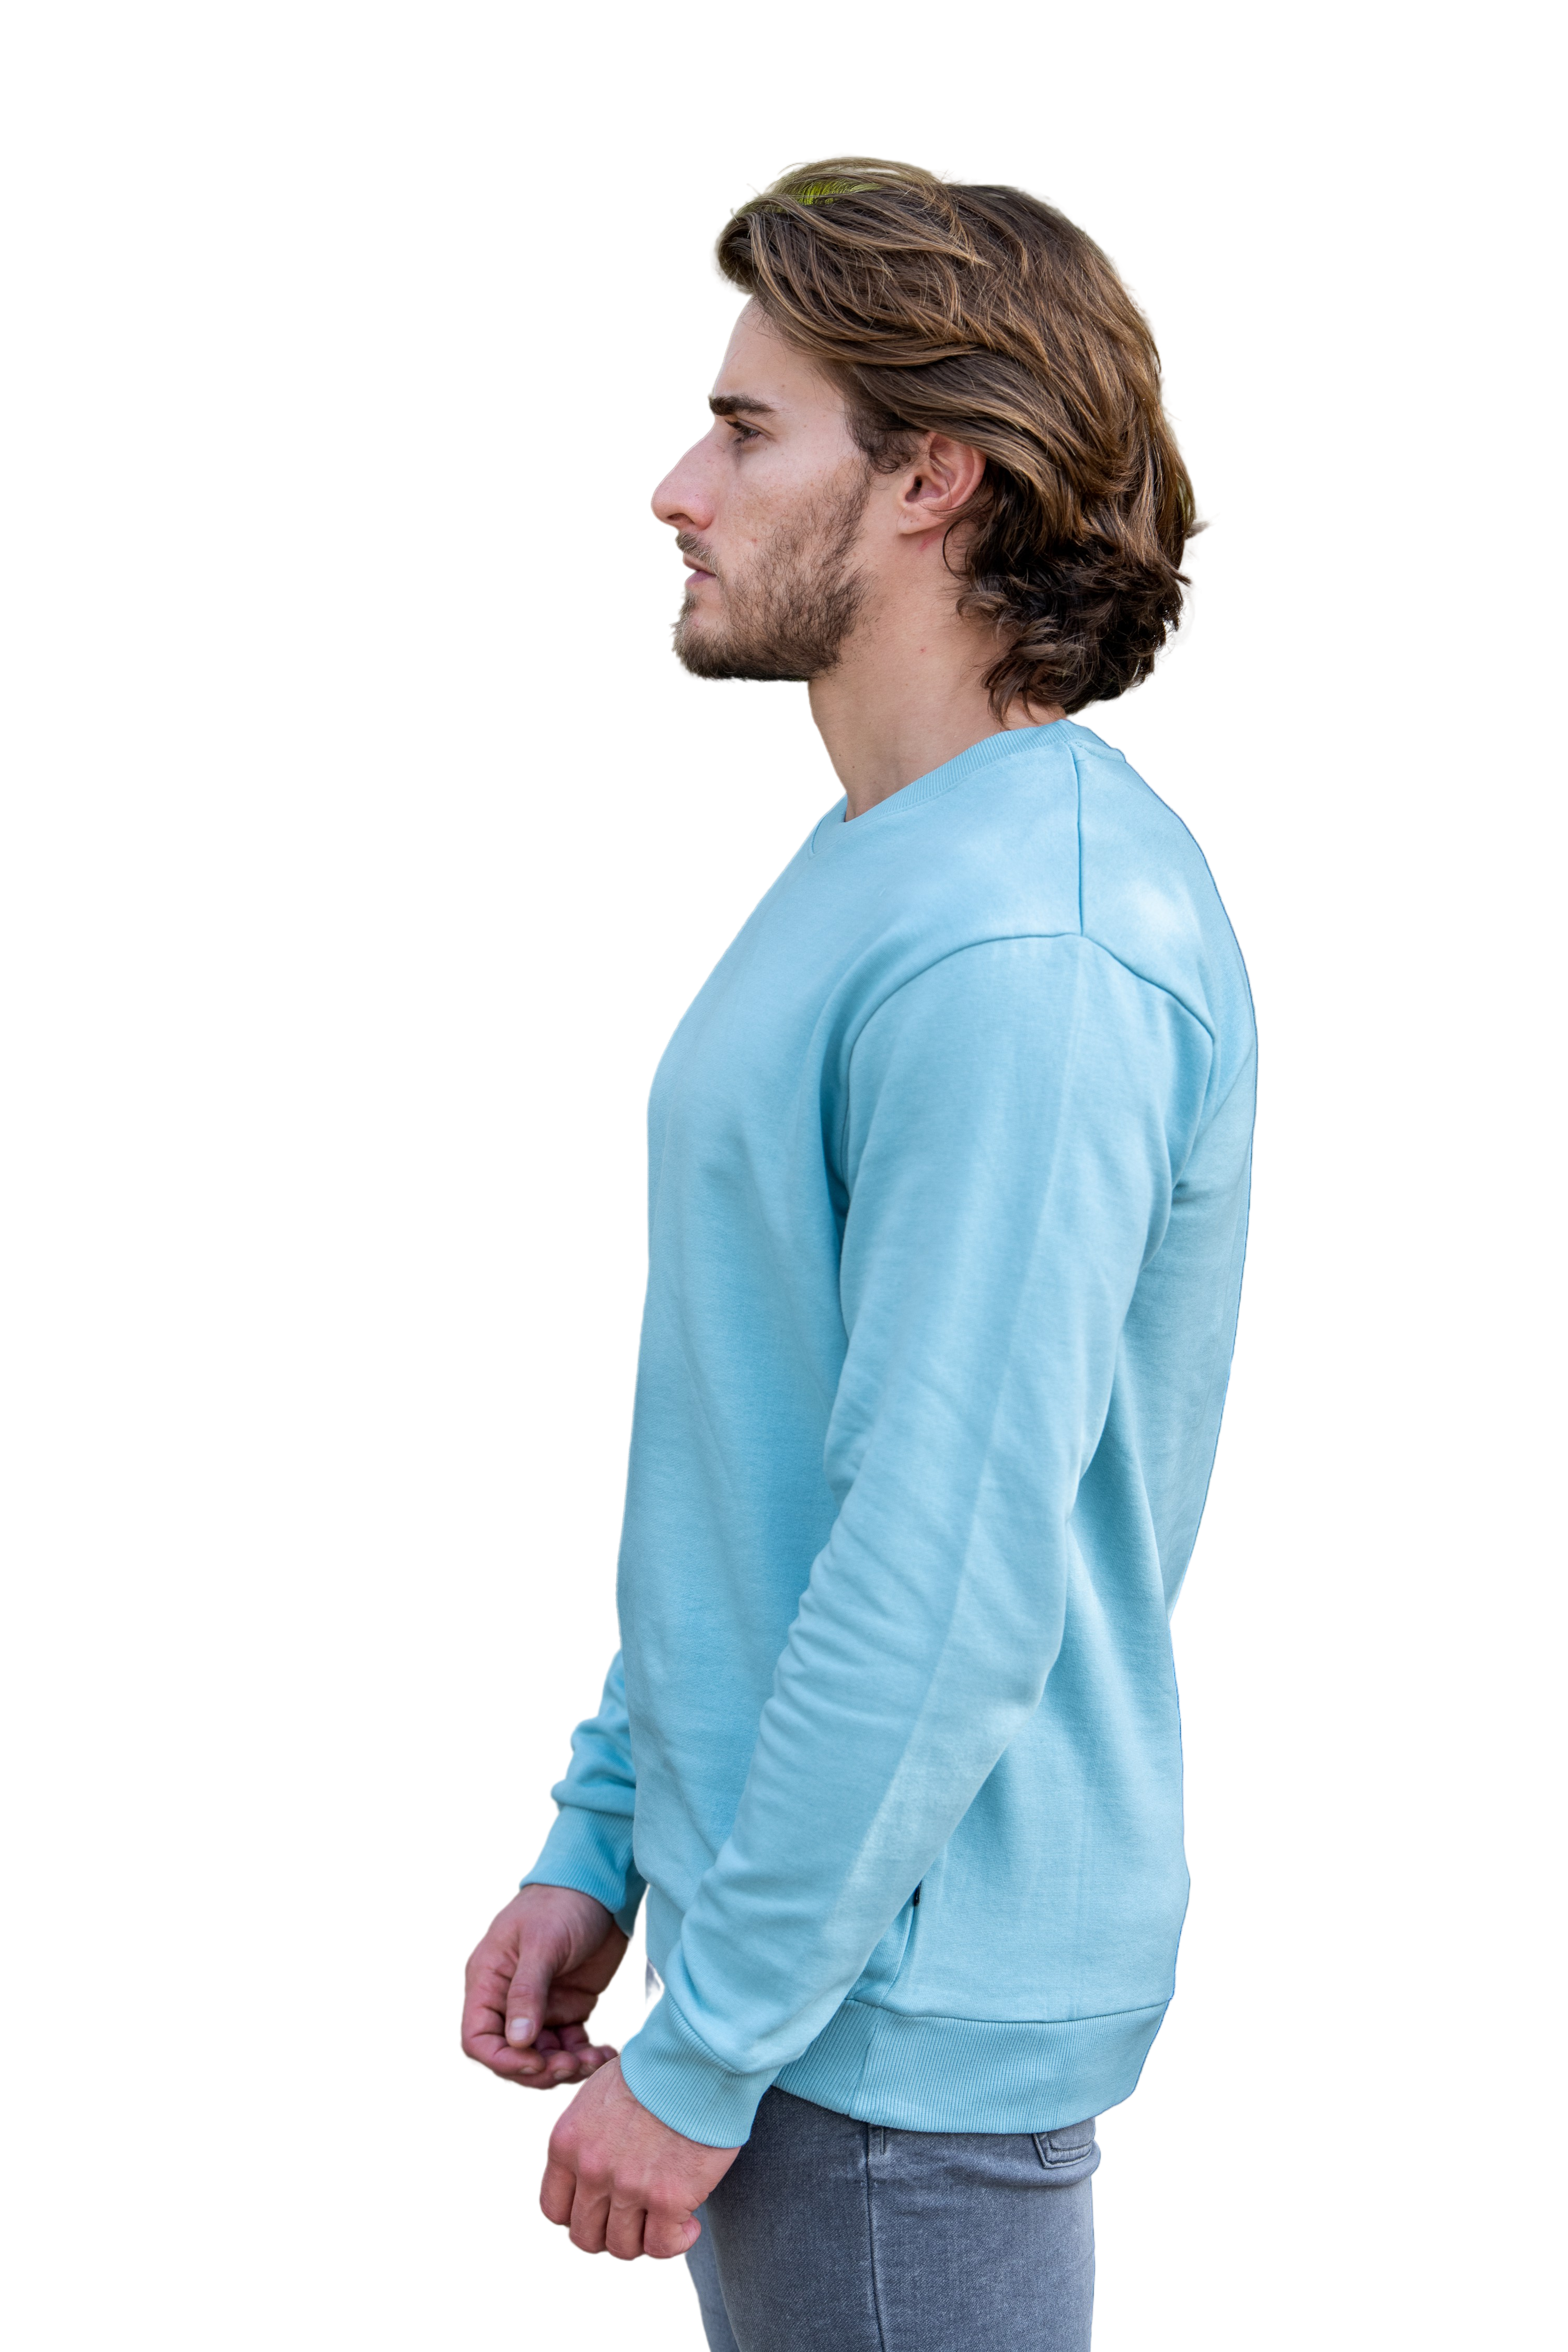 Relaxed fit Signature Ice Blue Sweatshirt